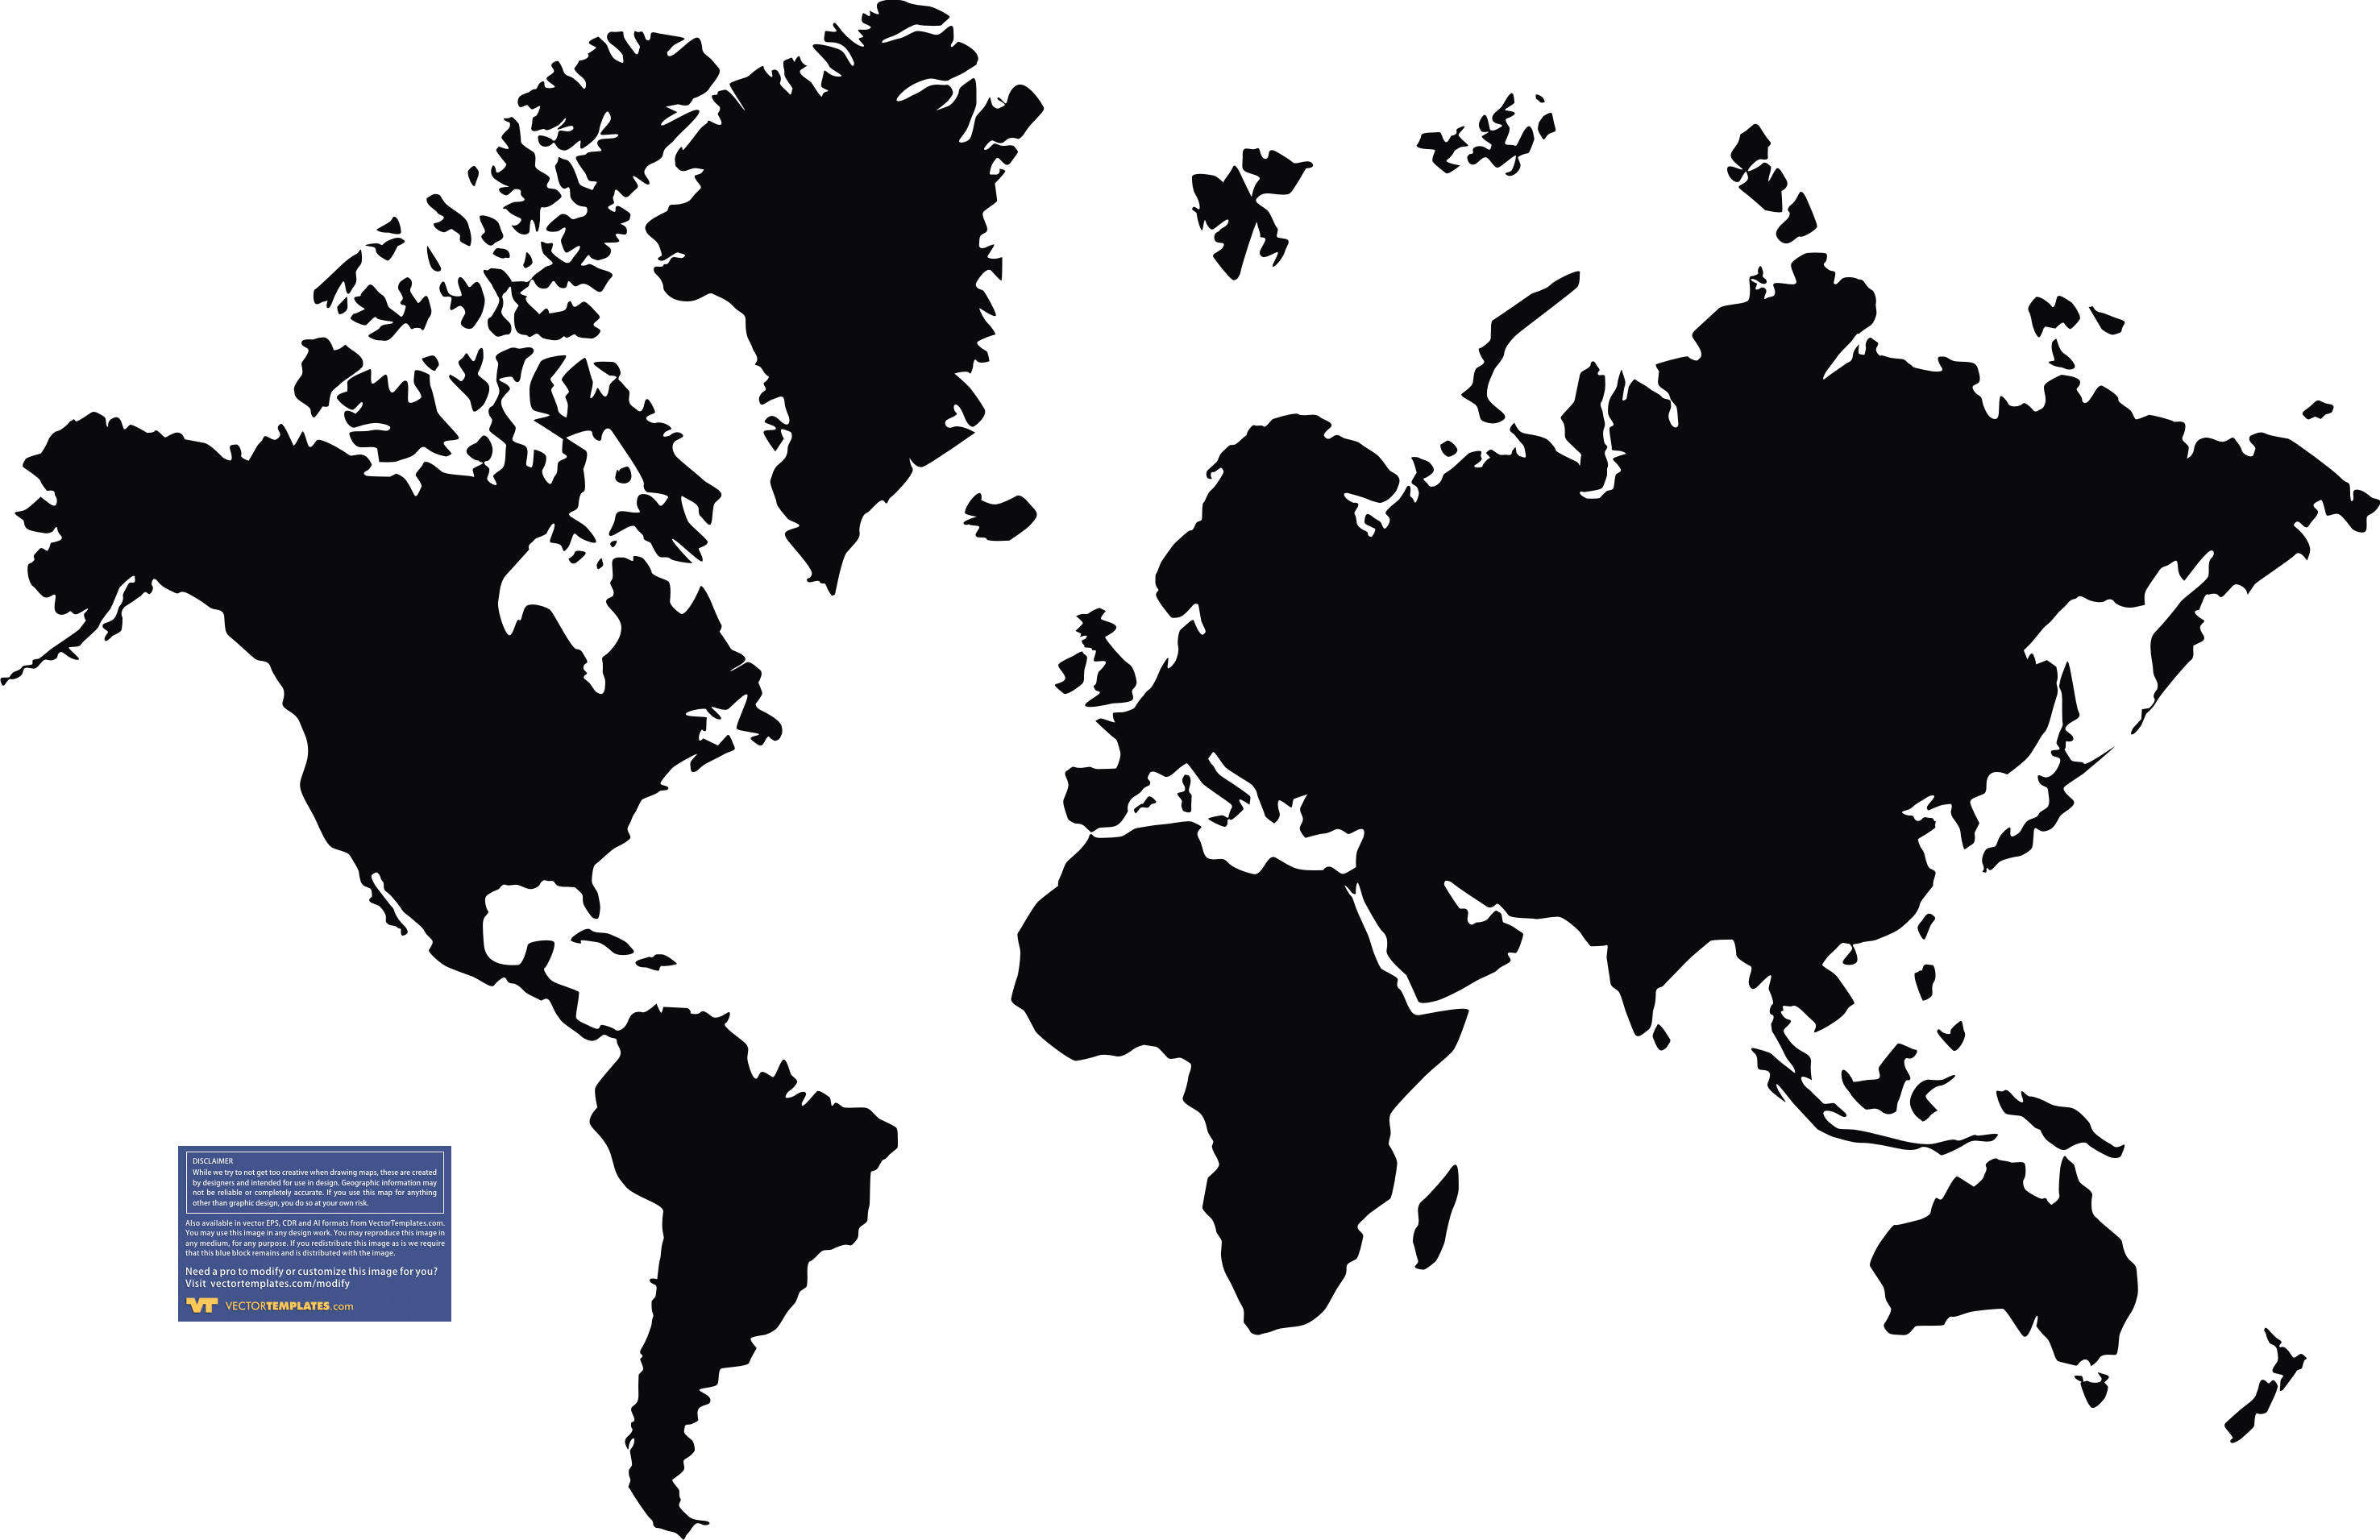 World map black and white with continents hd images 3 hd wallpapers world map black and white with continents hd images 3 hd wallpapers gumiabroncs Images